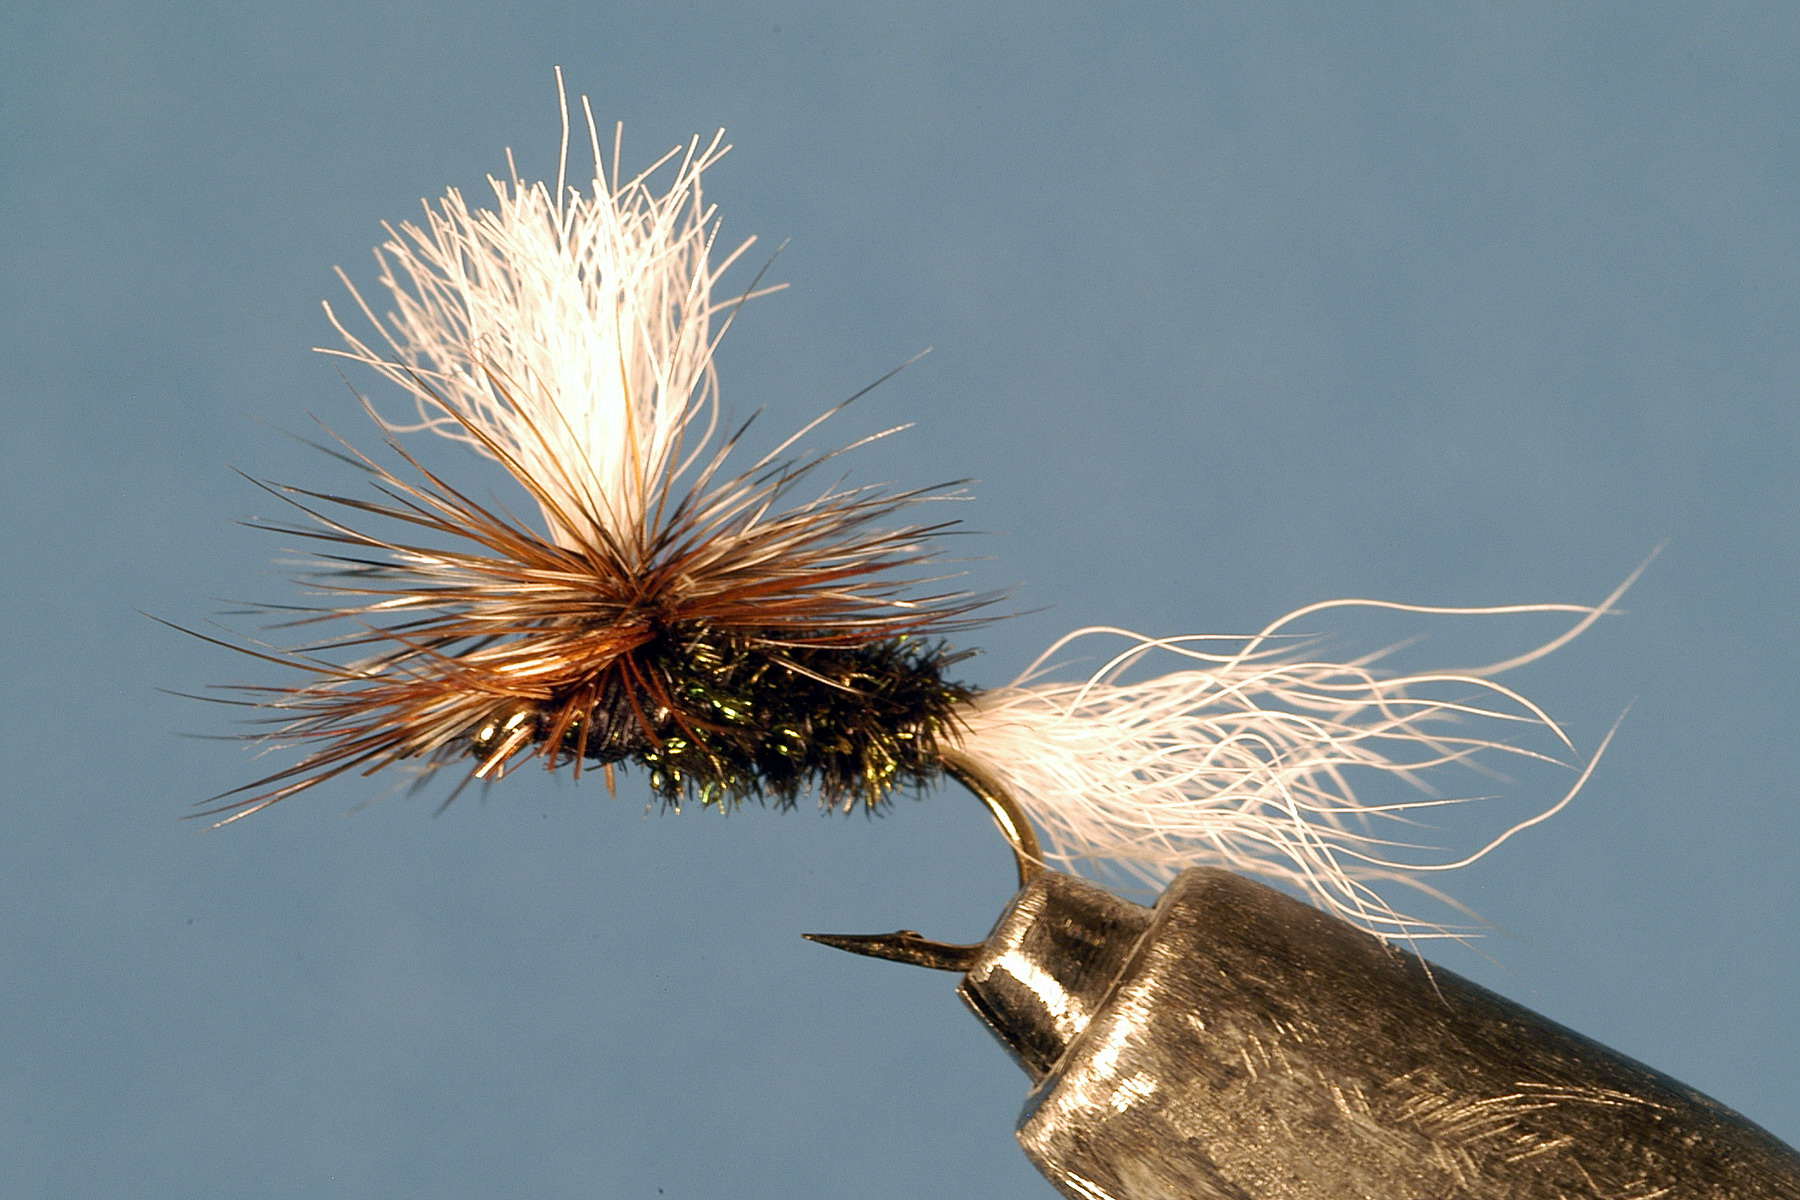 Multicolored Parachute Dry Fly Fishing Trout